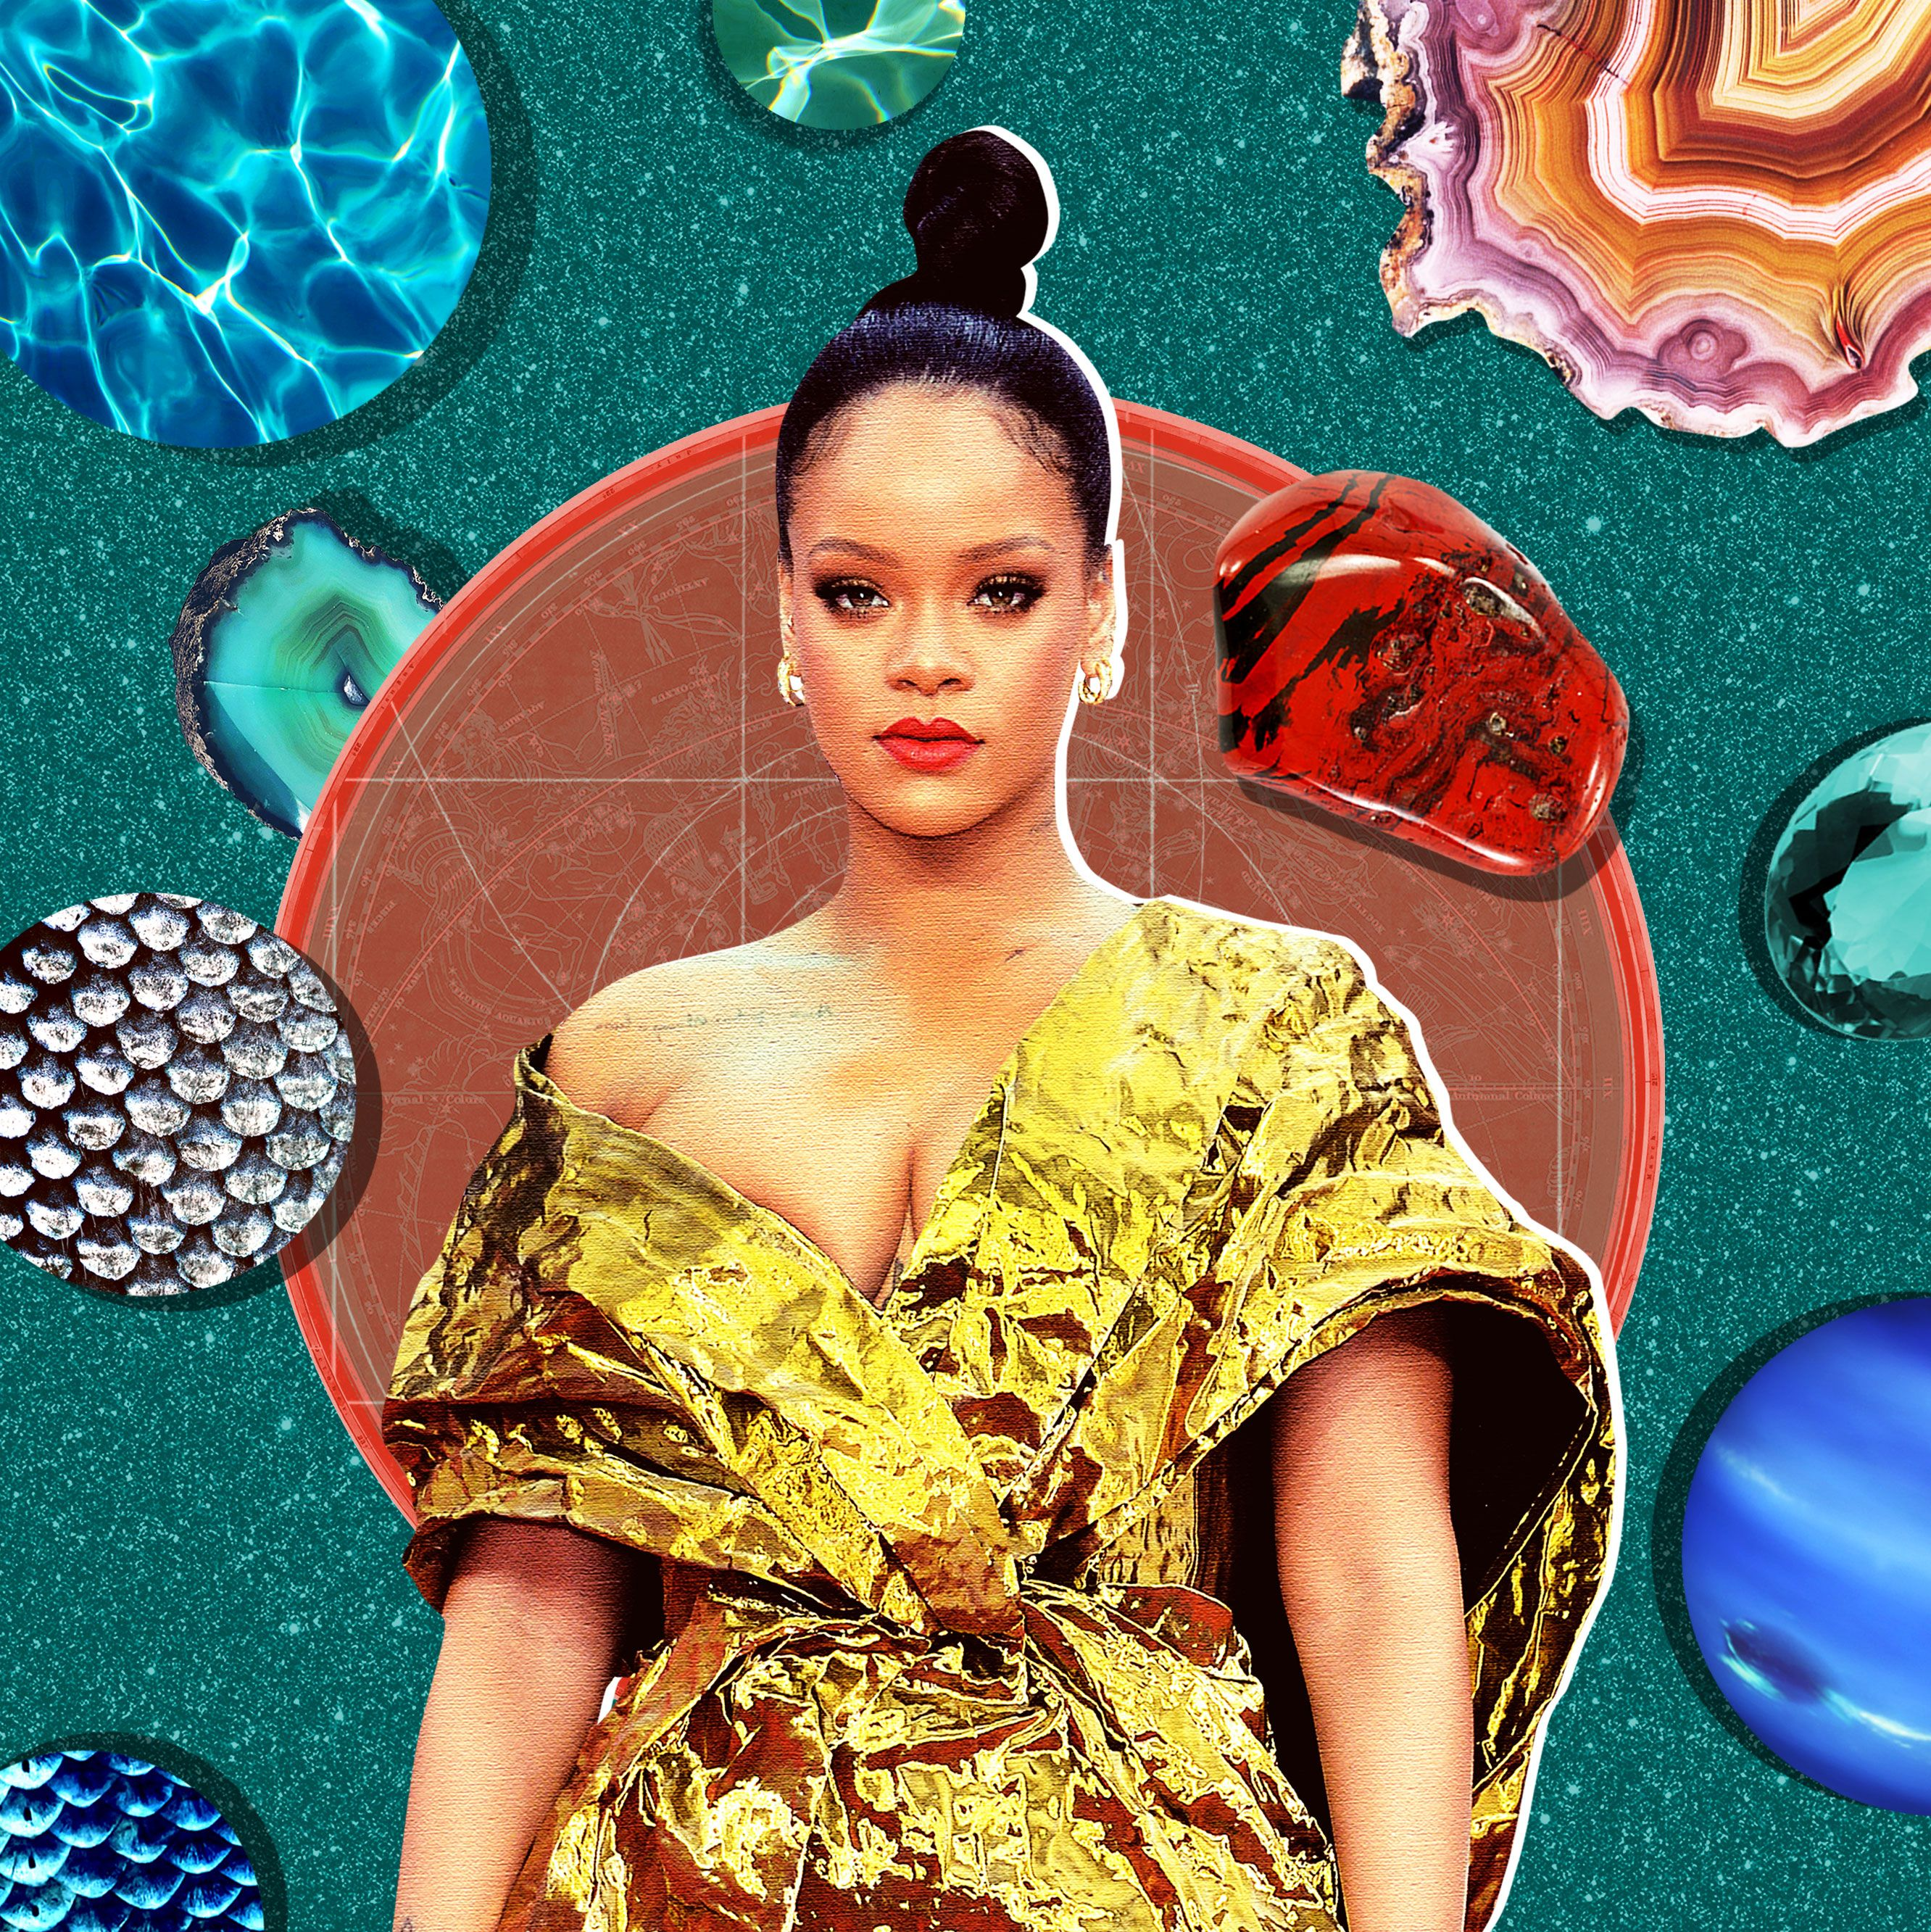 Weekly Horoscopes For The Week Of February 17 By The Cut